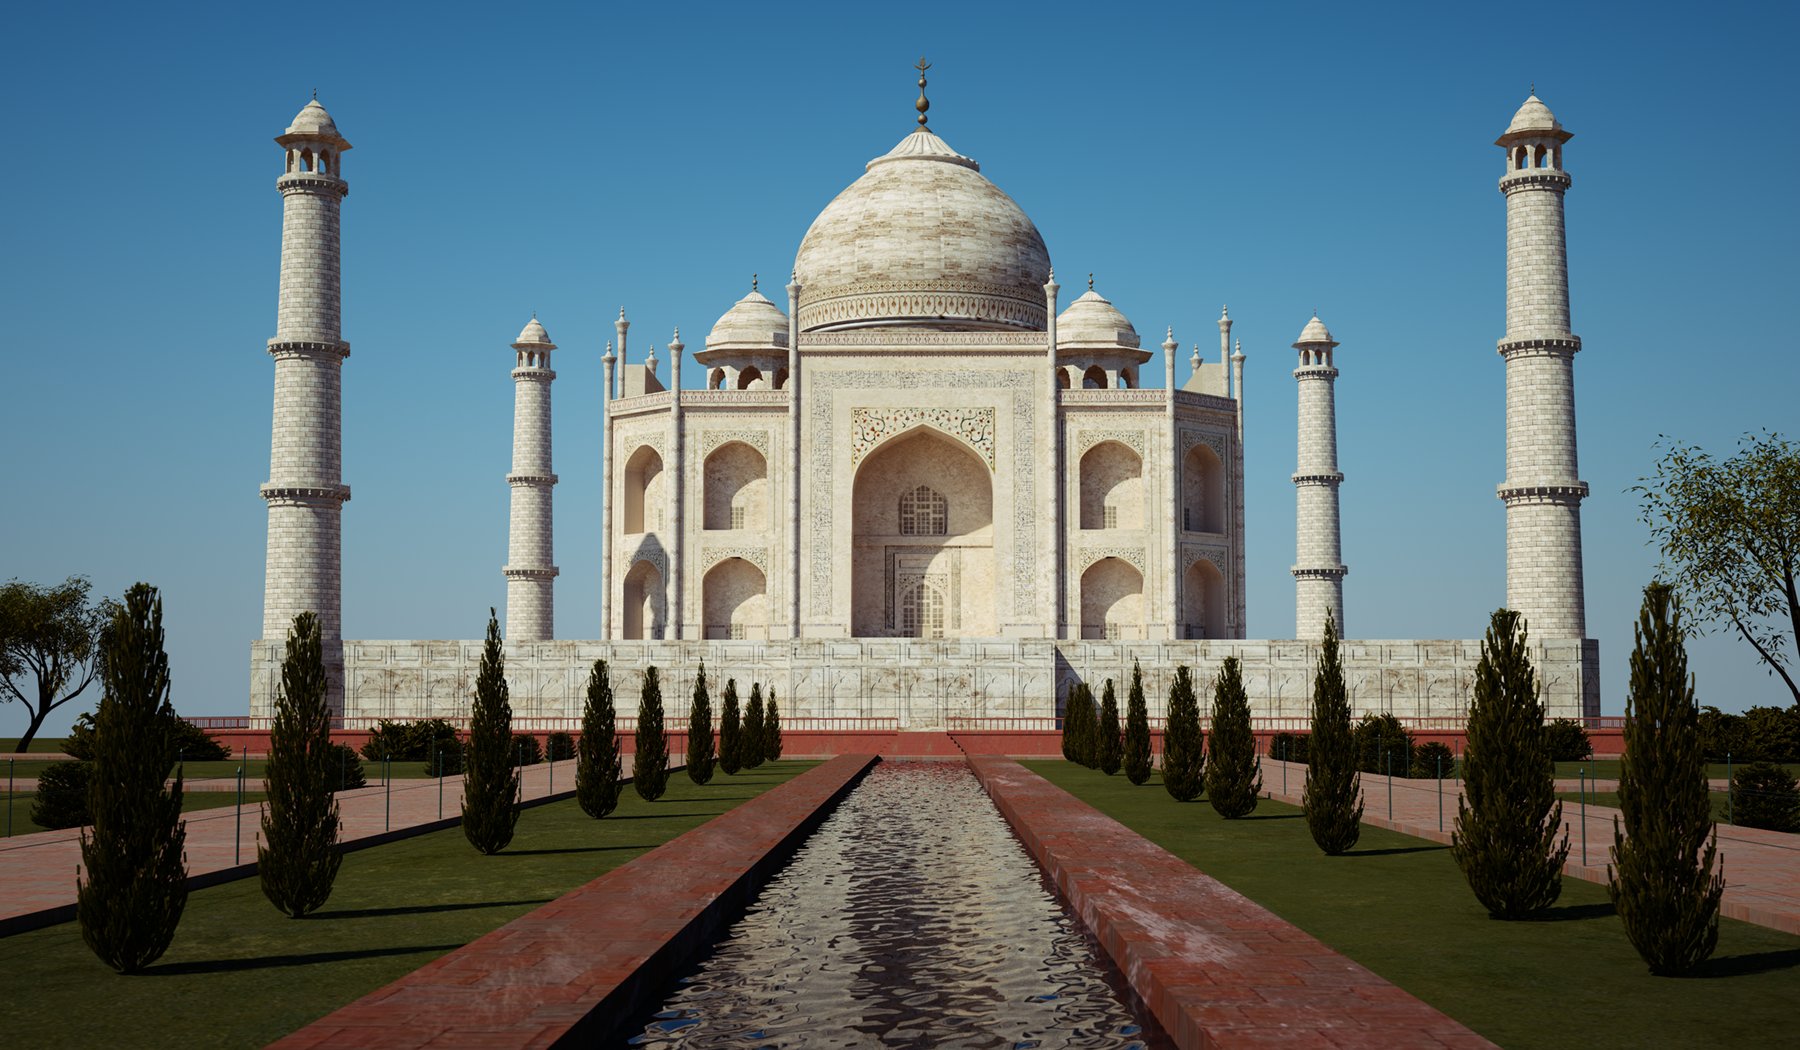 essay historical place taj mahal To know history more one should visit historical buildings it gives us the knowledge of the period and age in which it was built a visit to the taj mahal – essay.